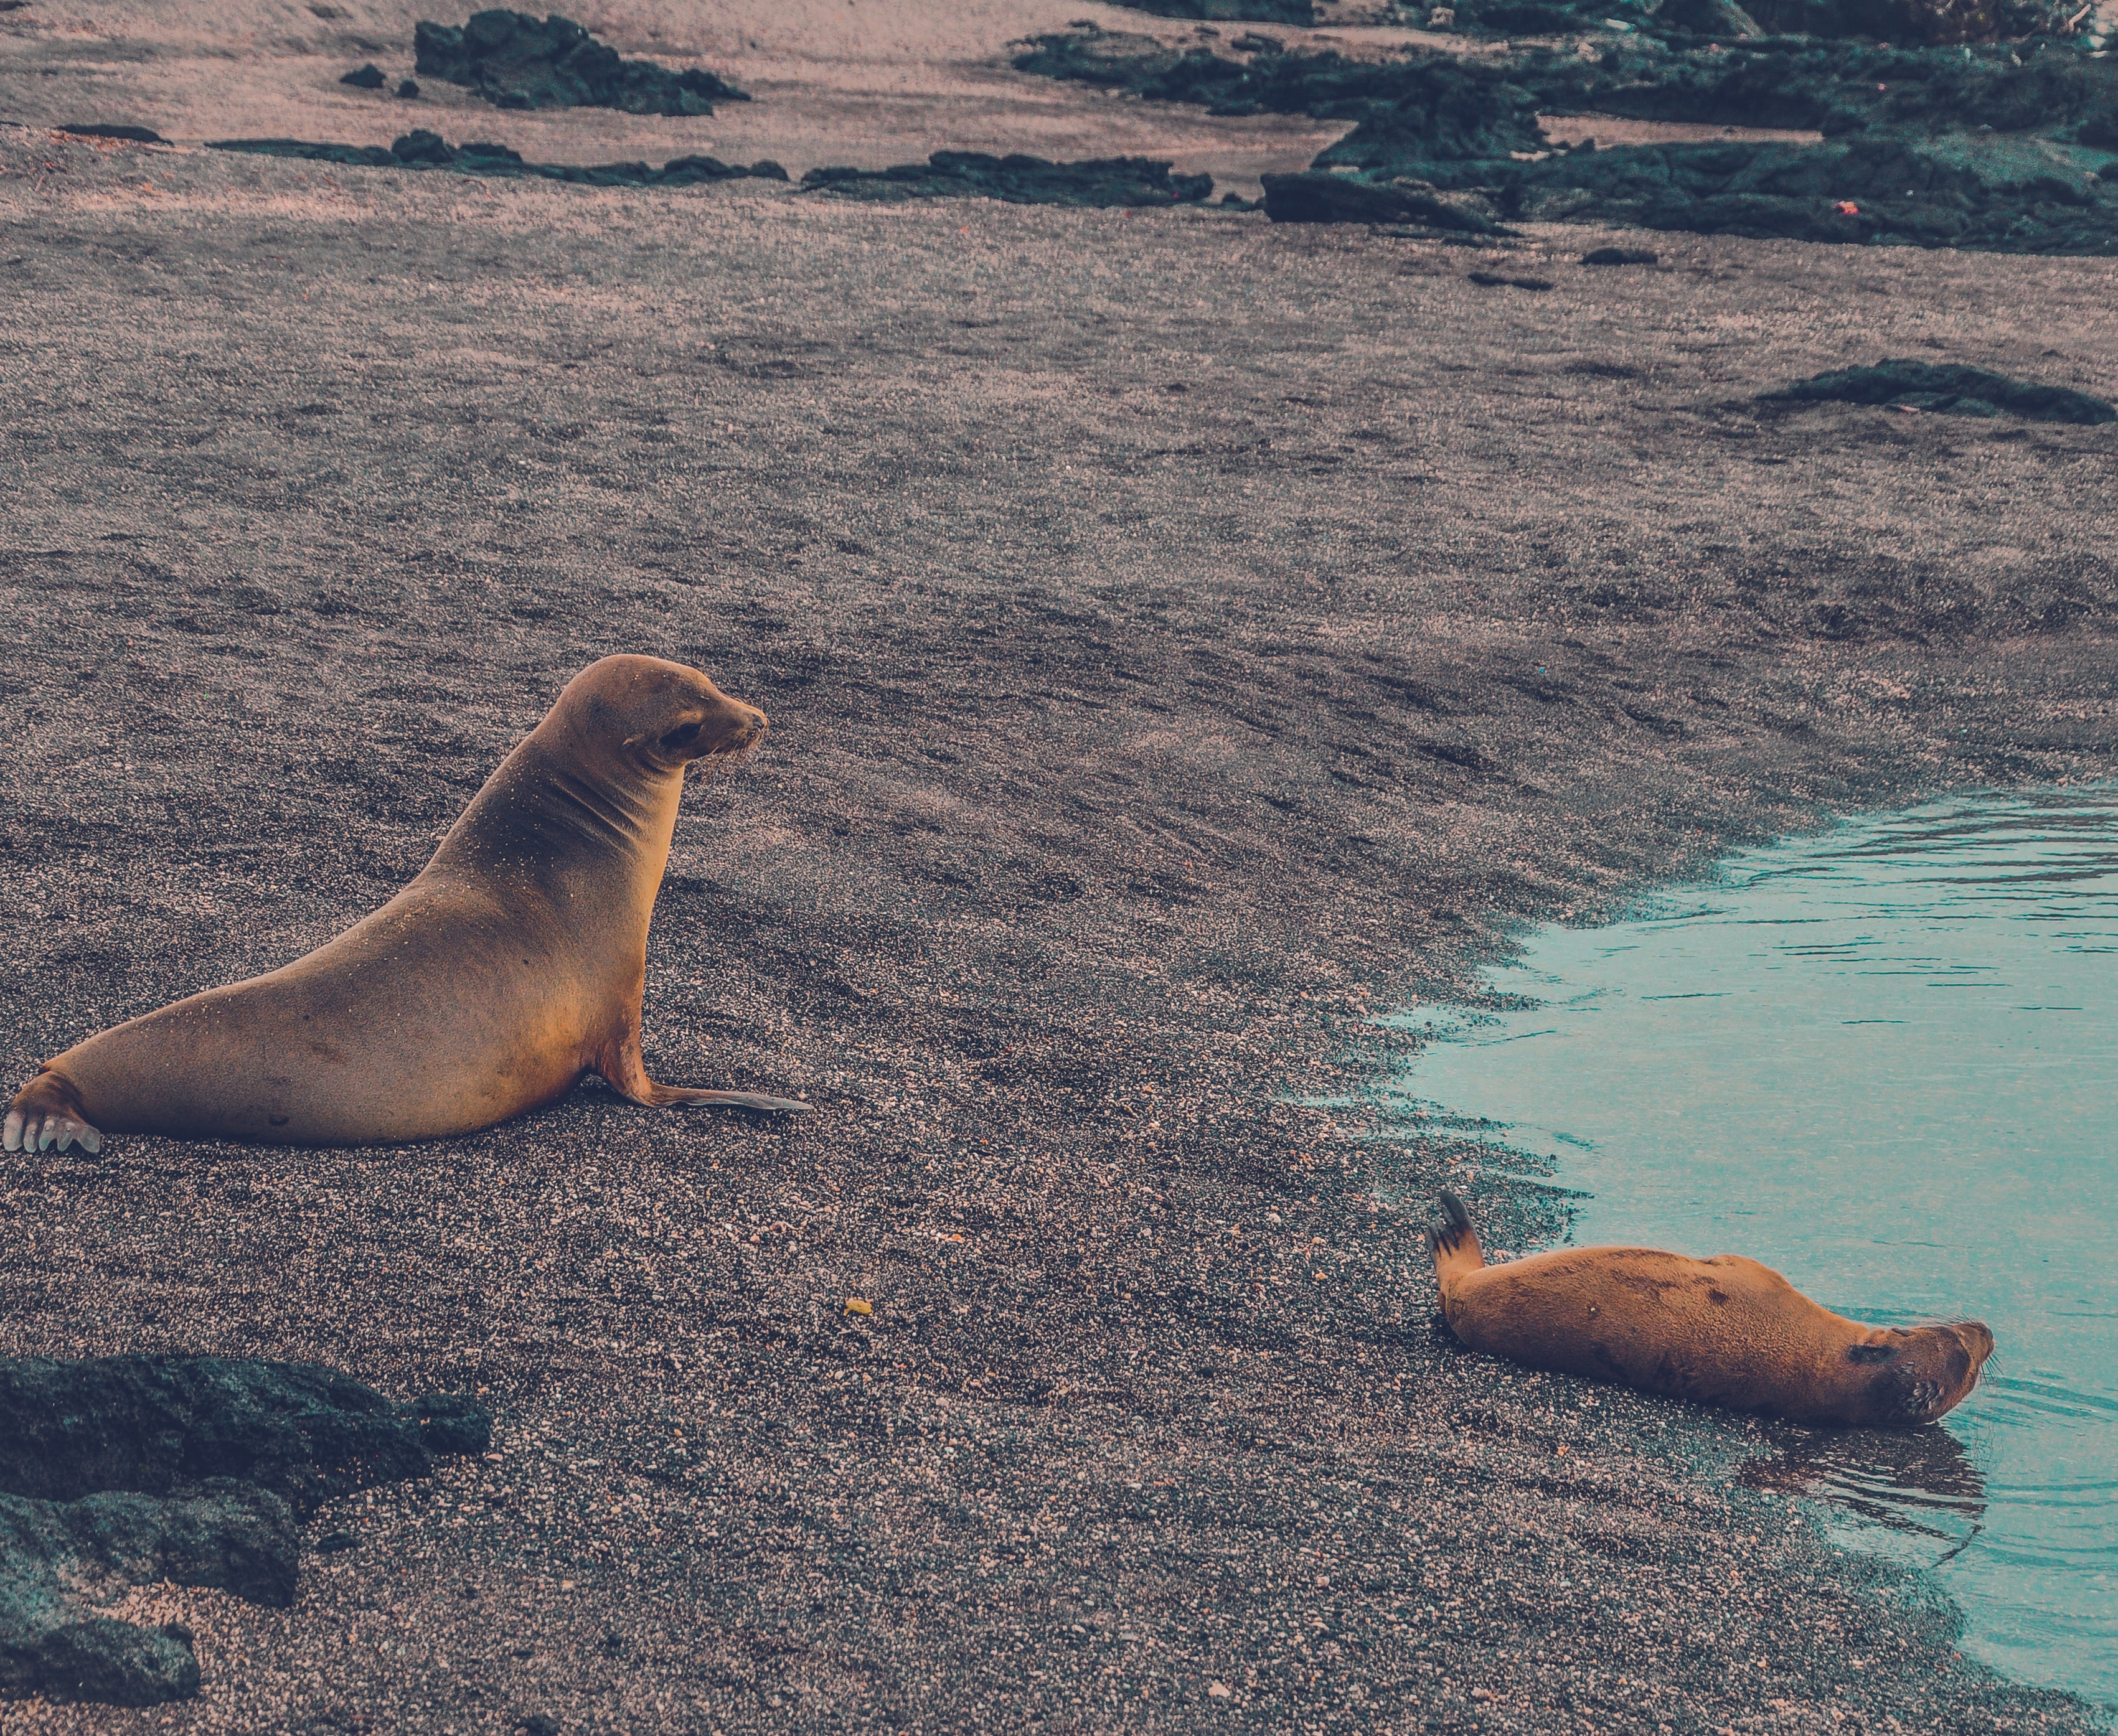 two brown sea lion near body of water at daytime